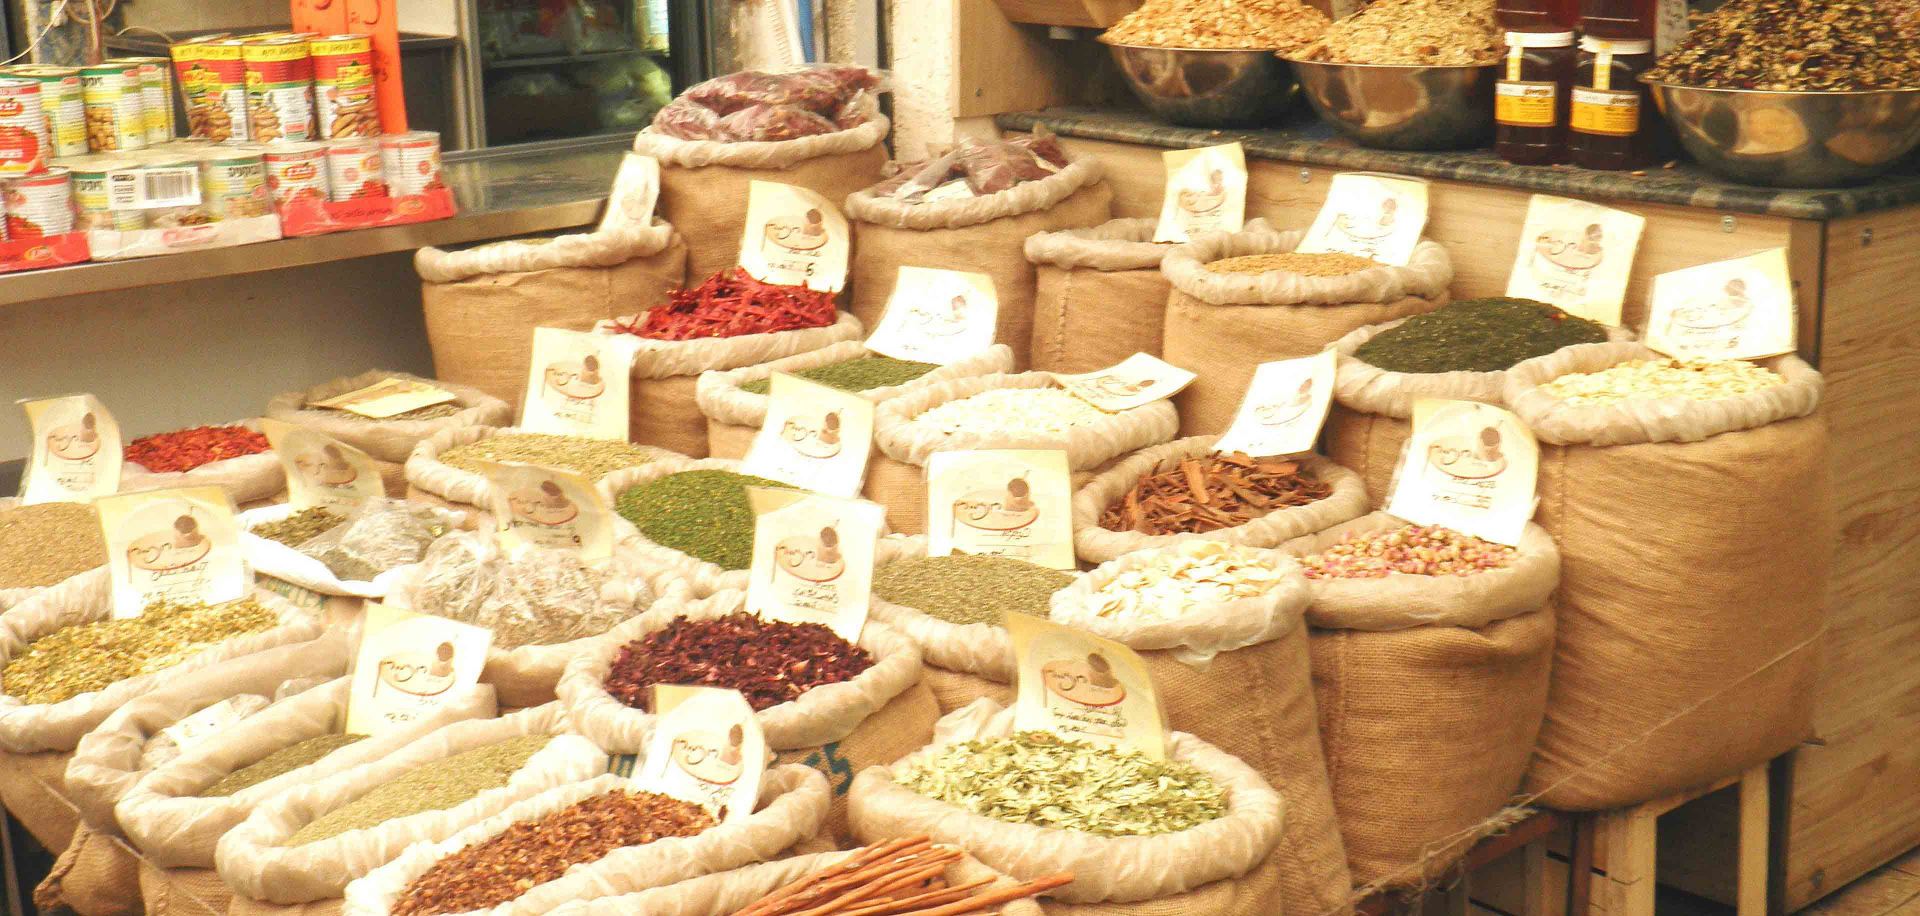 A market stall with spices